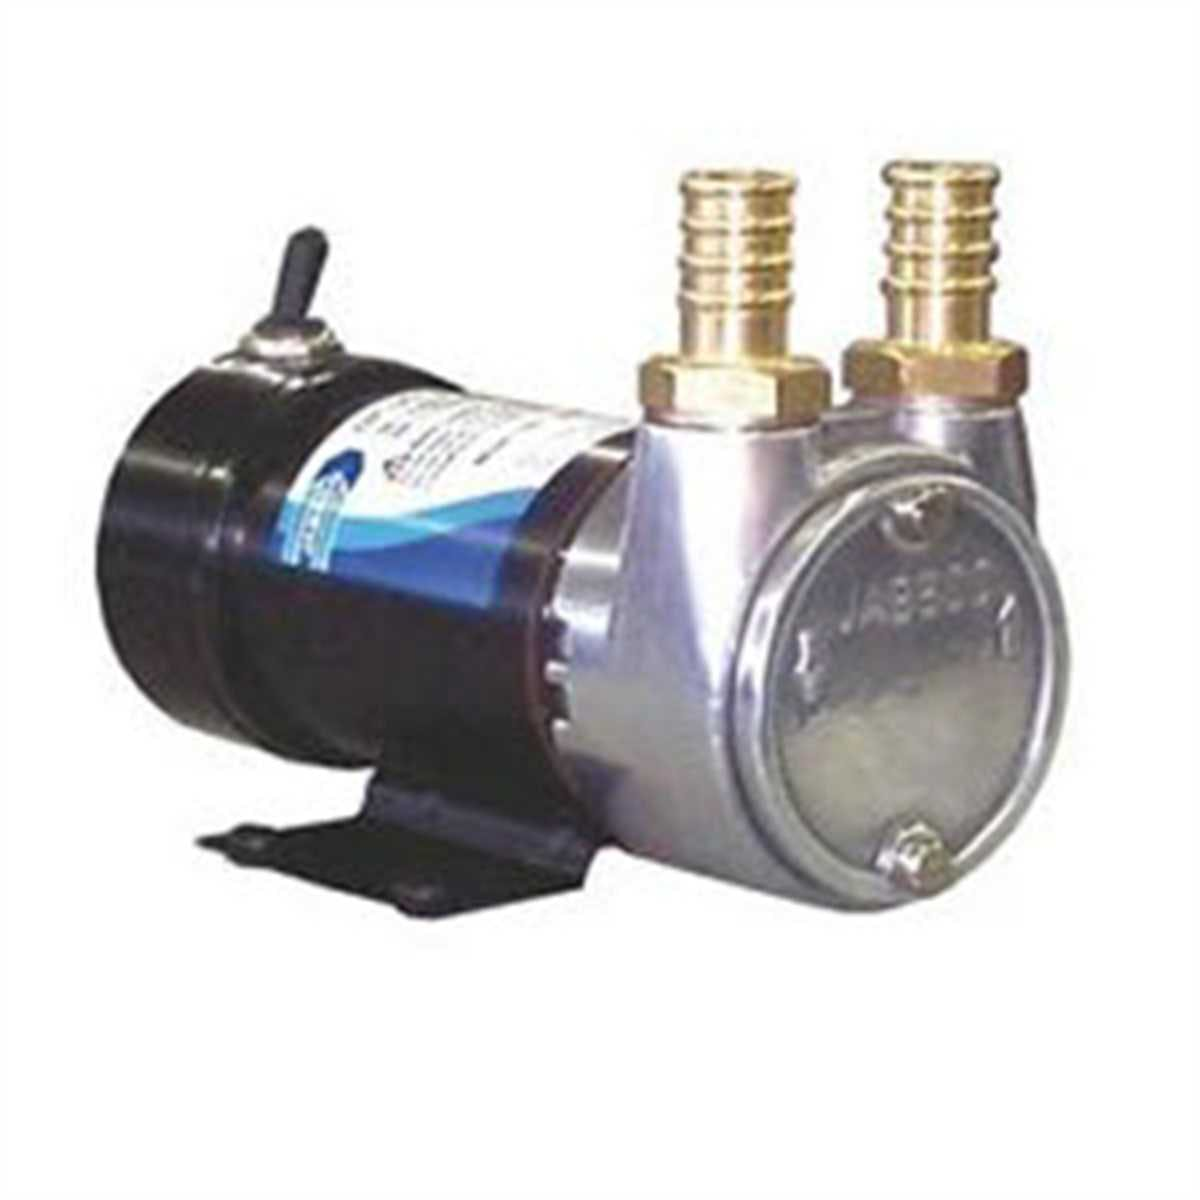 Jabsco Pump, Flexible Impeller 30520-7000 Sanitary pump sold by Janeice Products Co Inc.